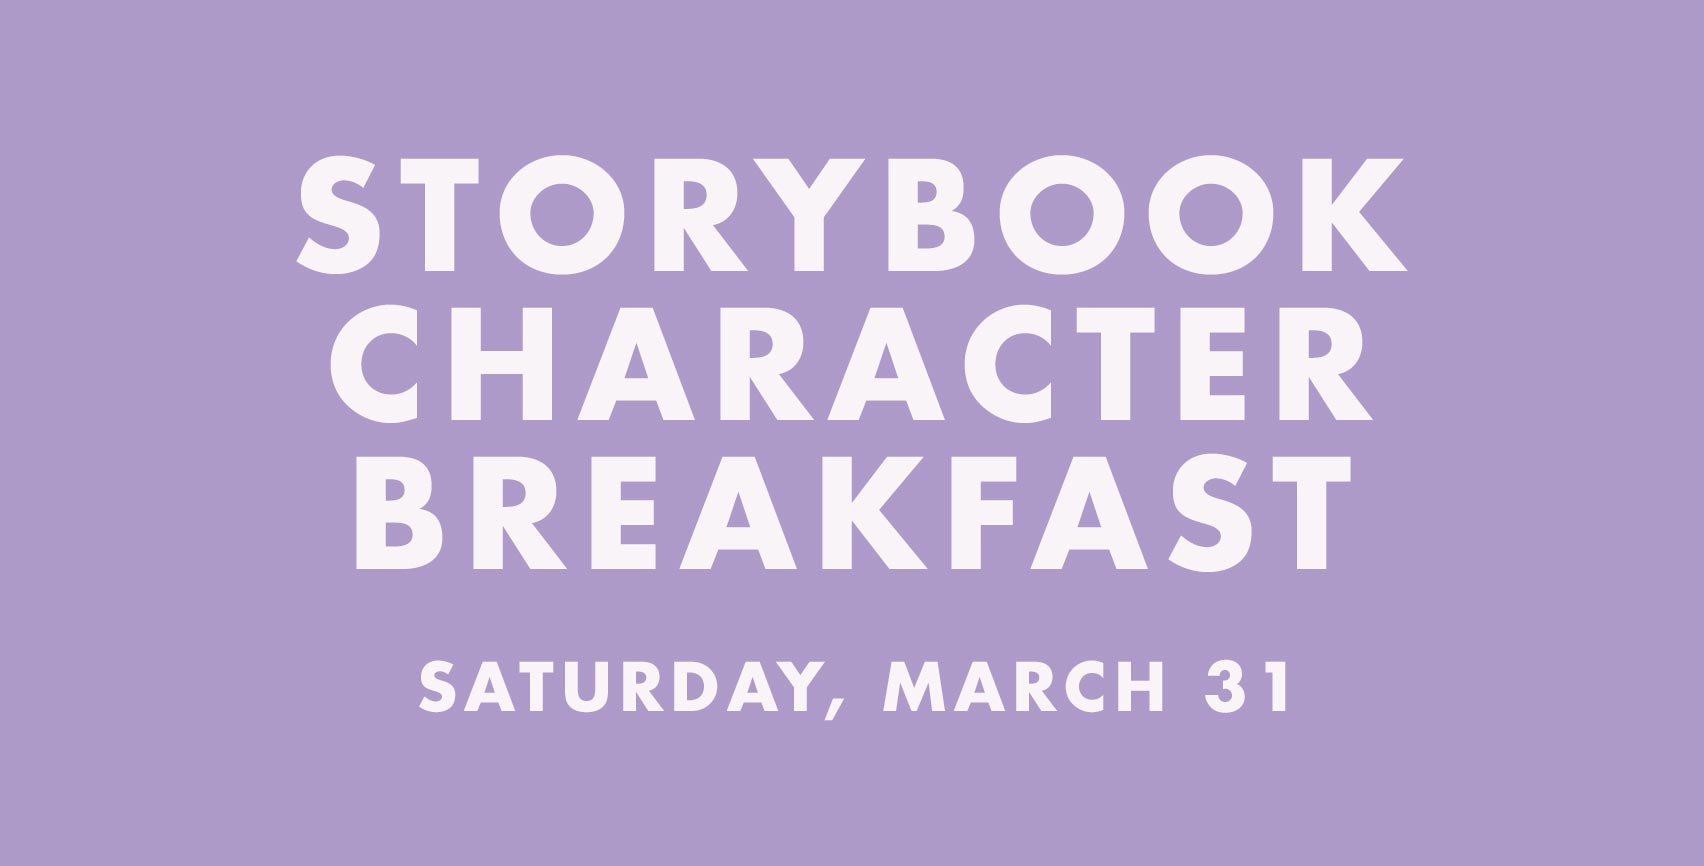 Storybook Character Breakfast